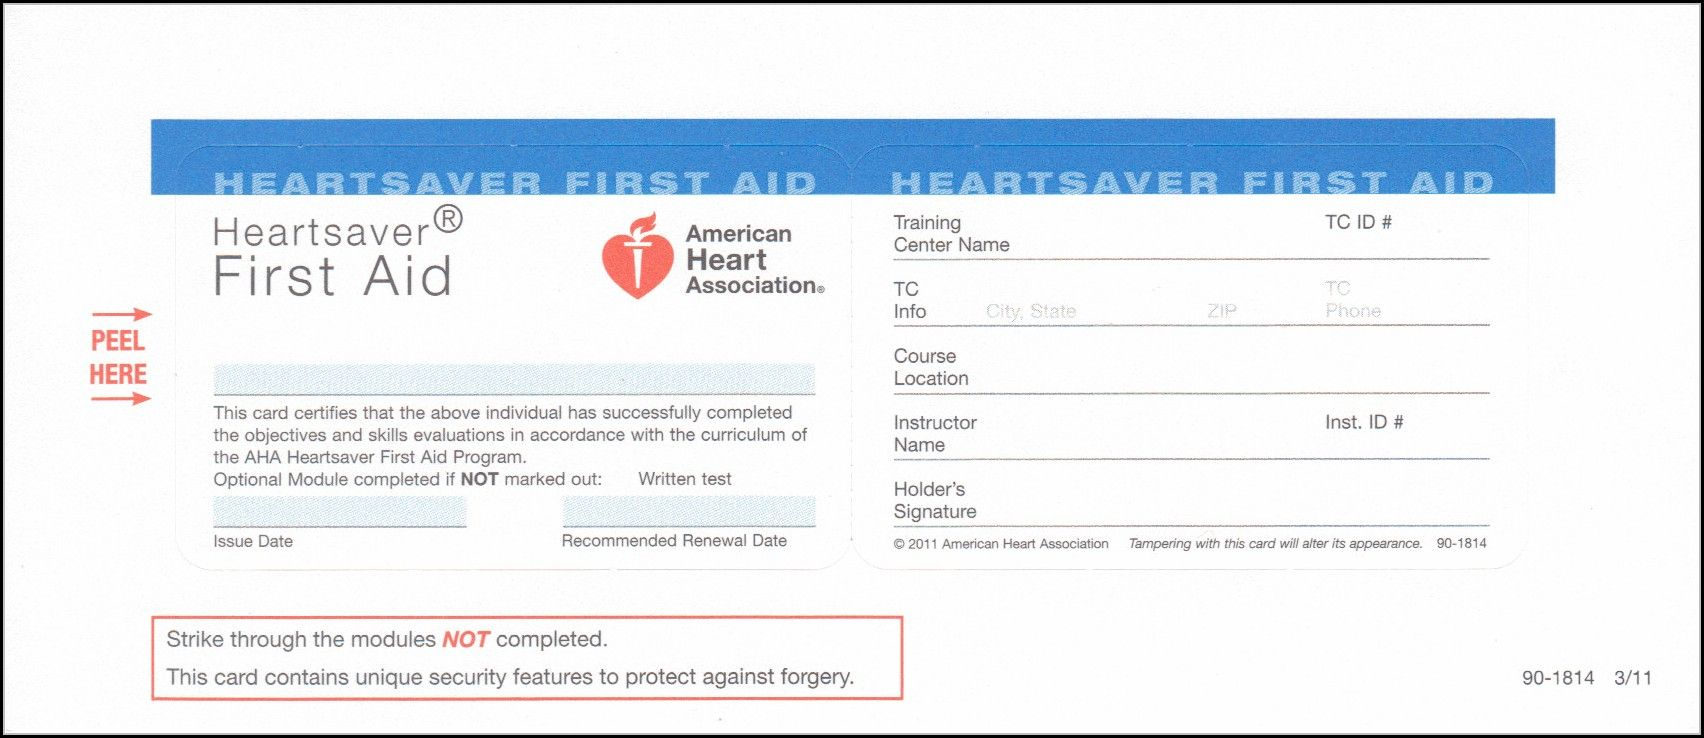 Heartsaver First Aid Cpr Aed Card Template Template 1 For Cpr Card Template Cumed Org First Aid Cpr Cpr Card Card Template